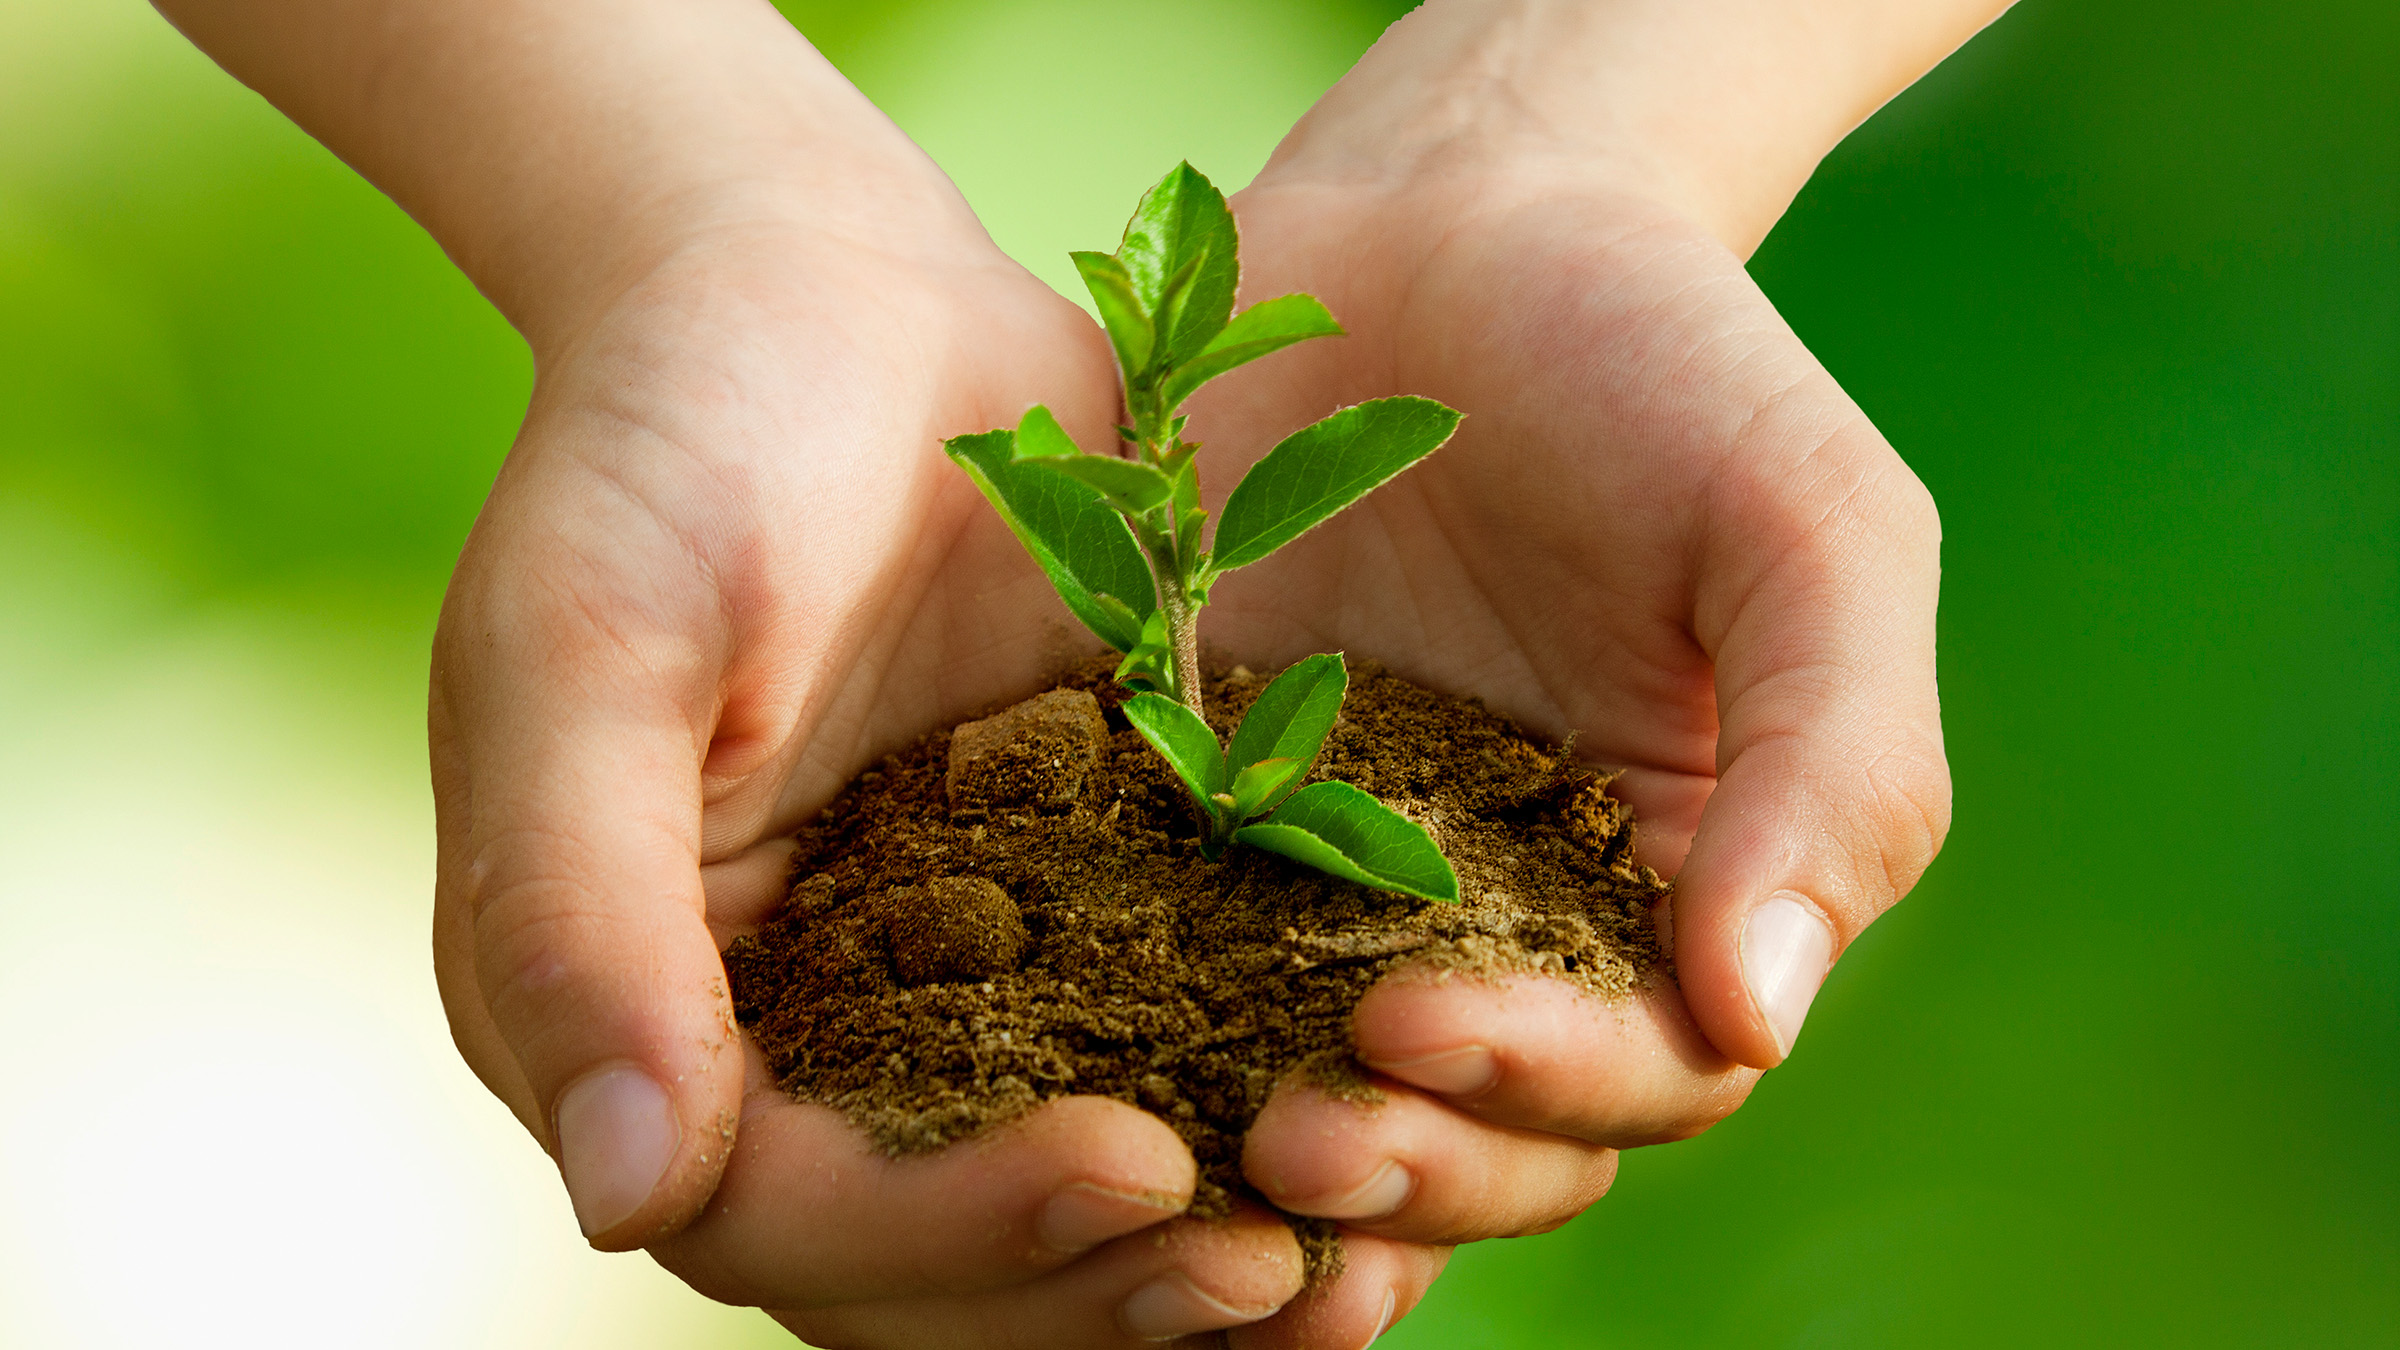 Hands cradling small green plant in soil